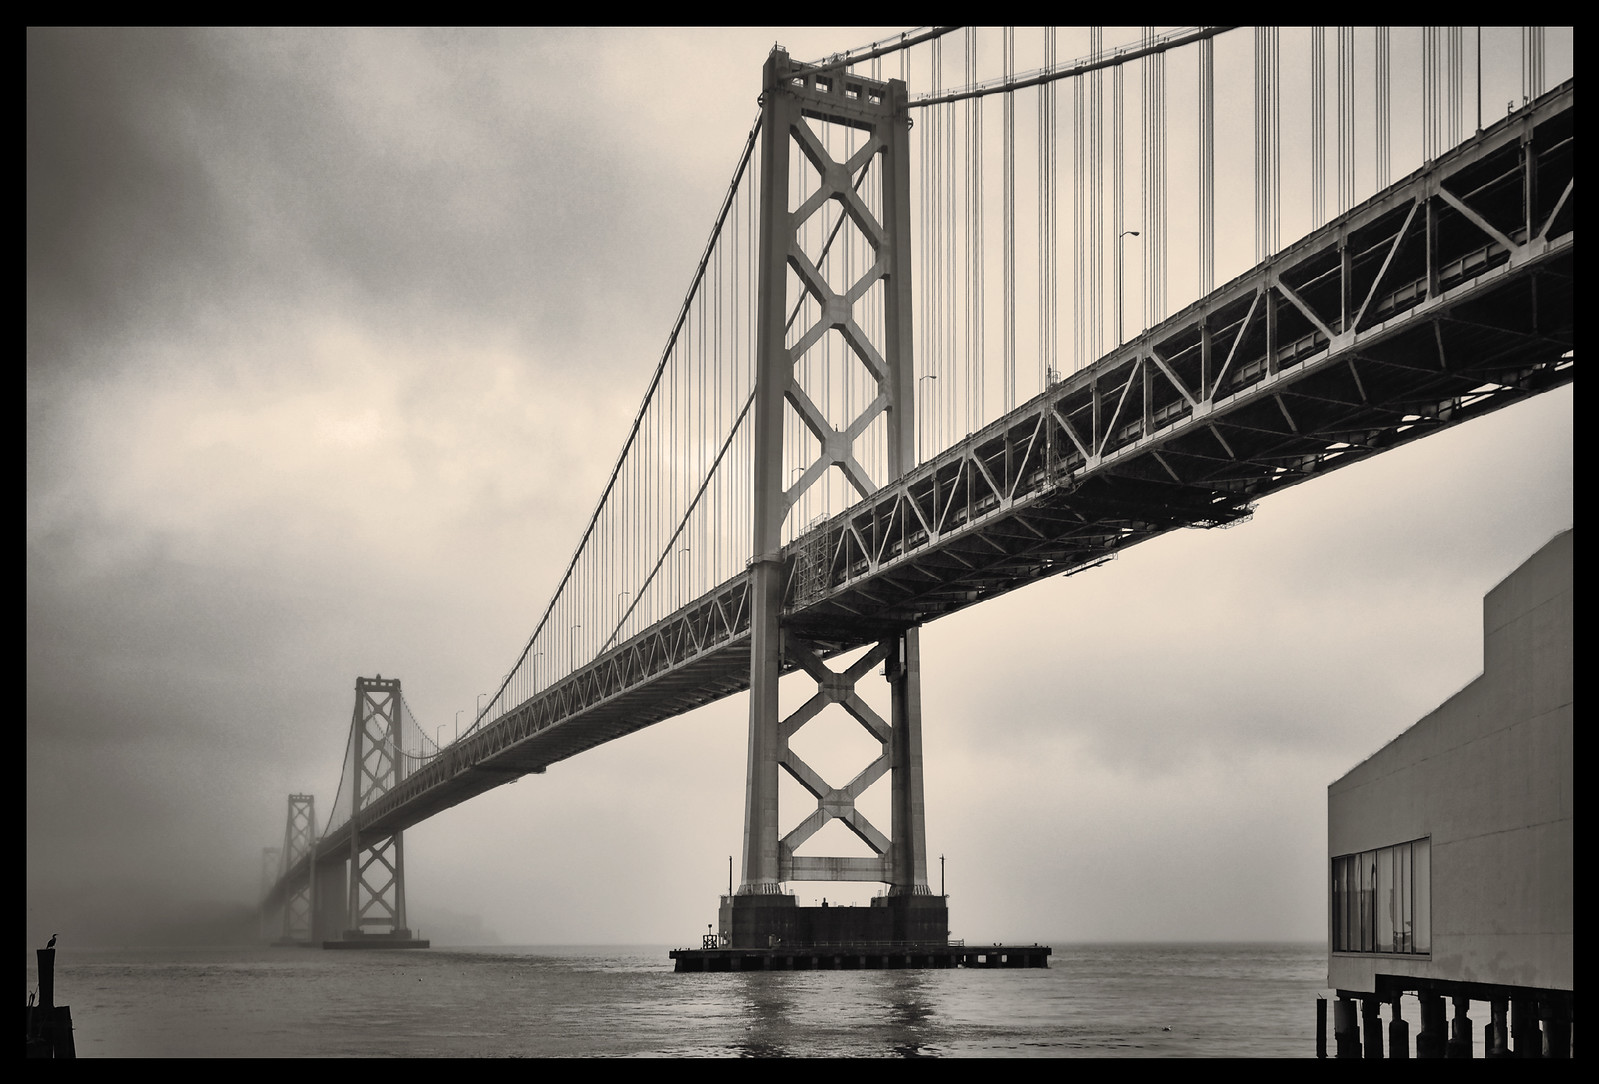 Moody #2 - San Francisco - 2014